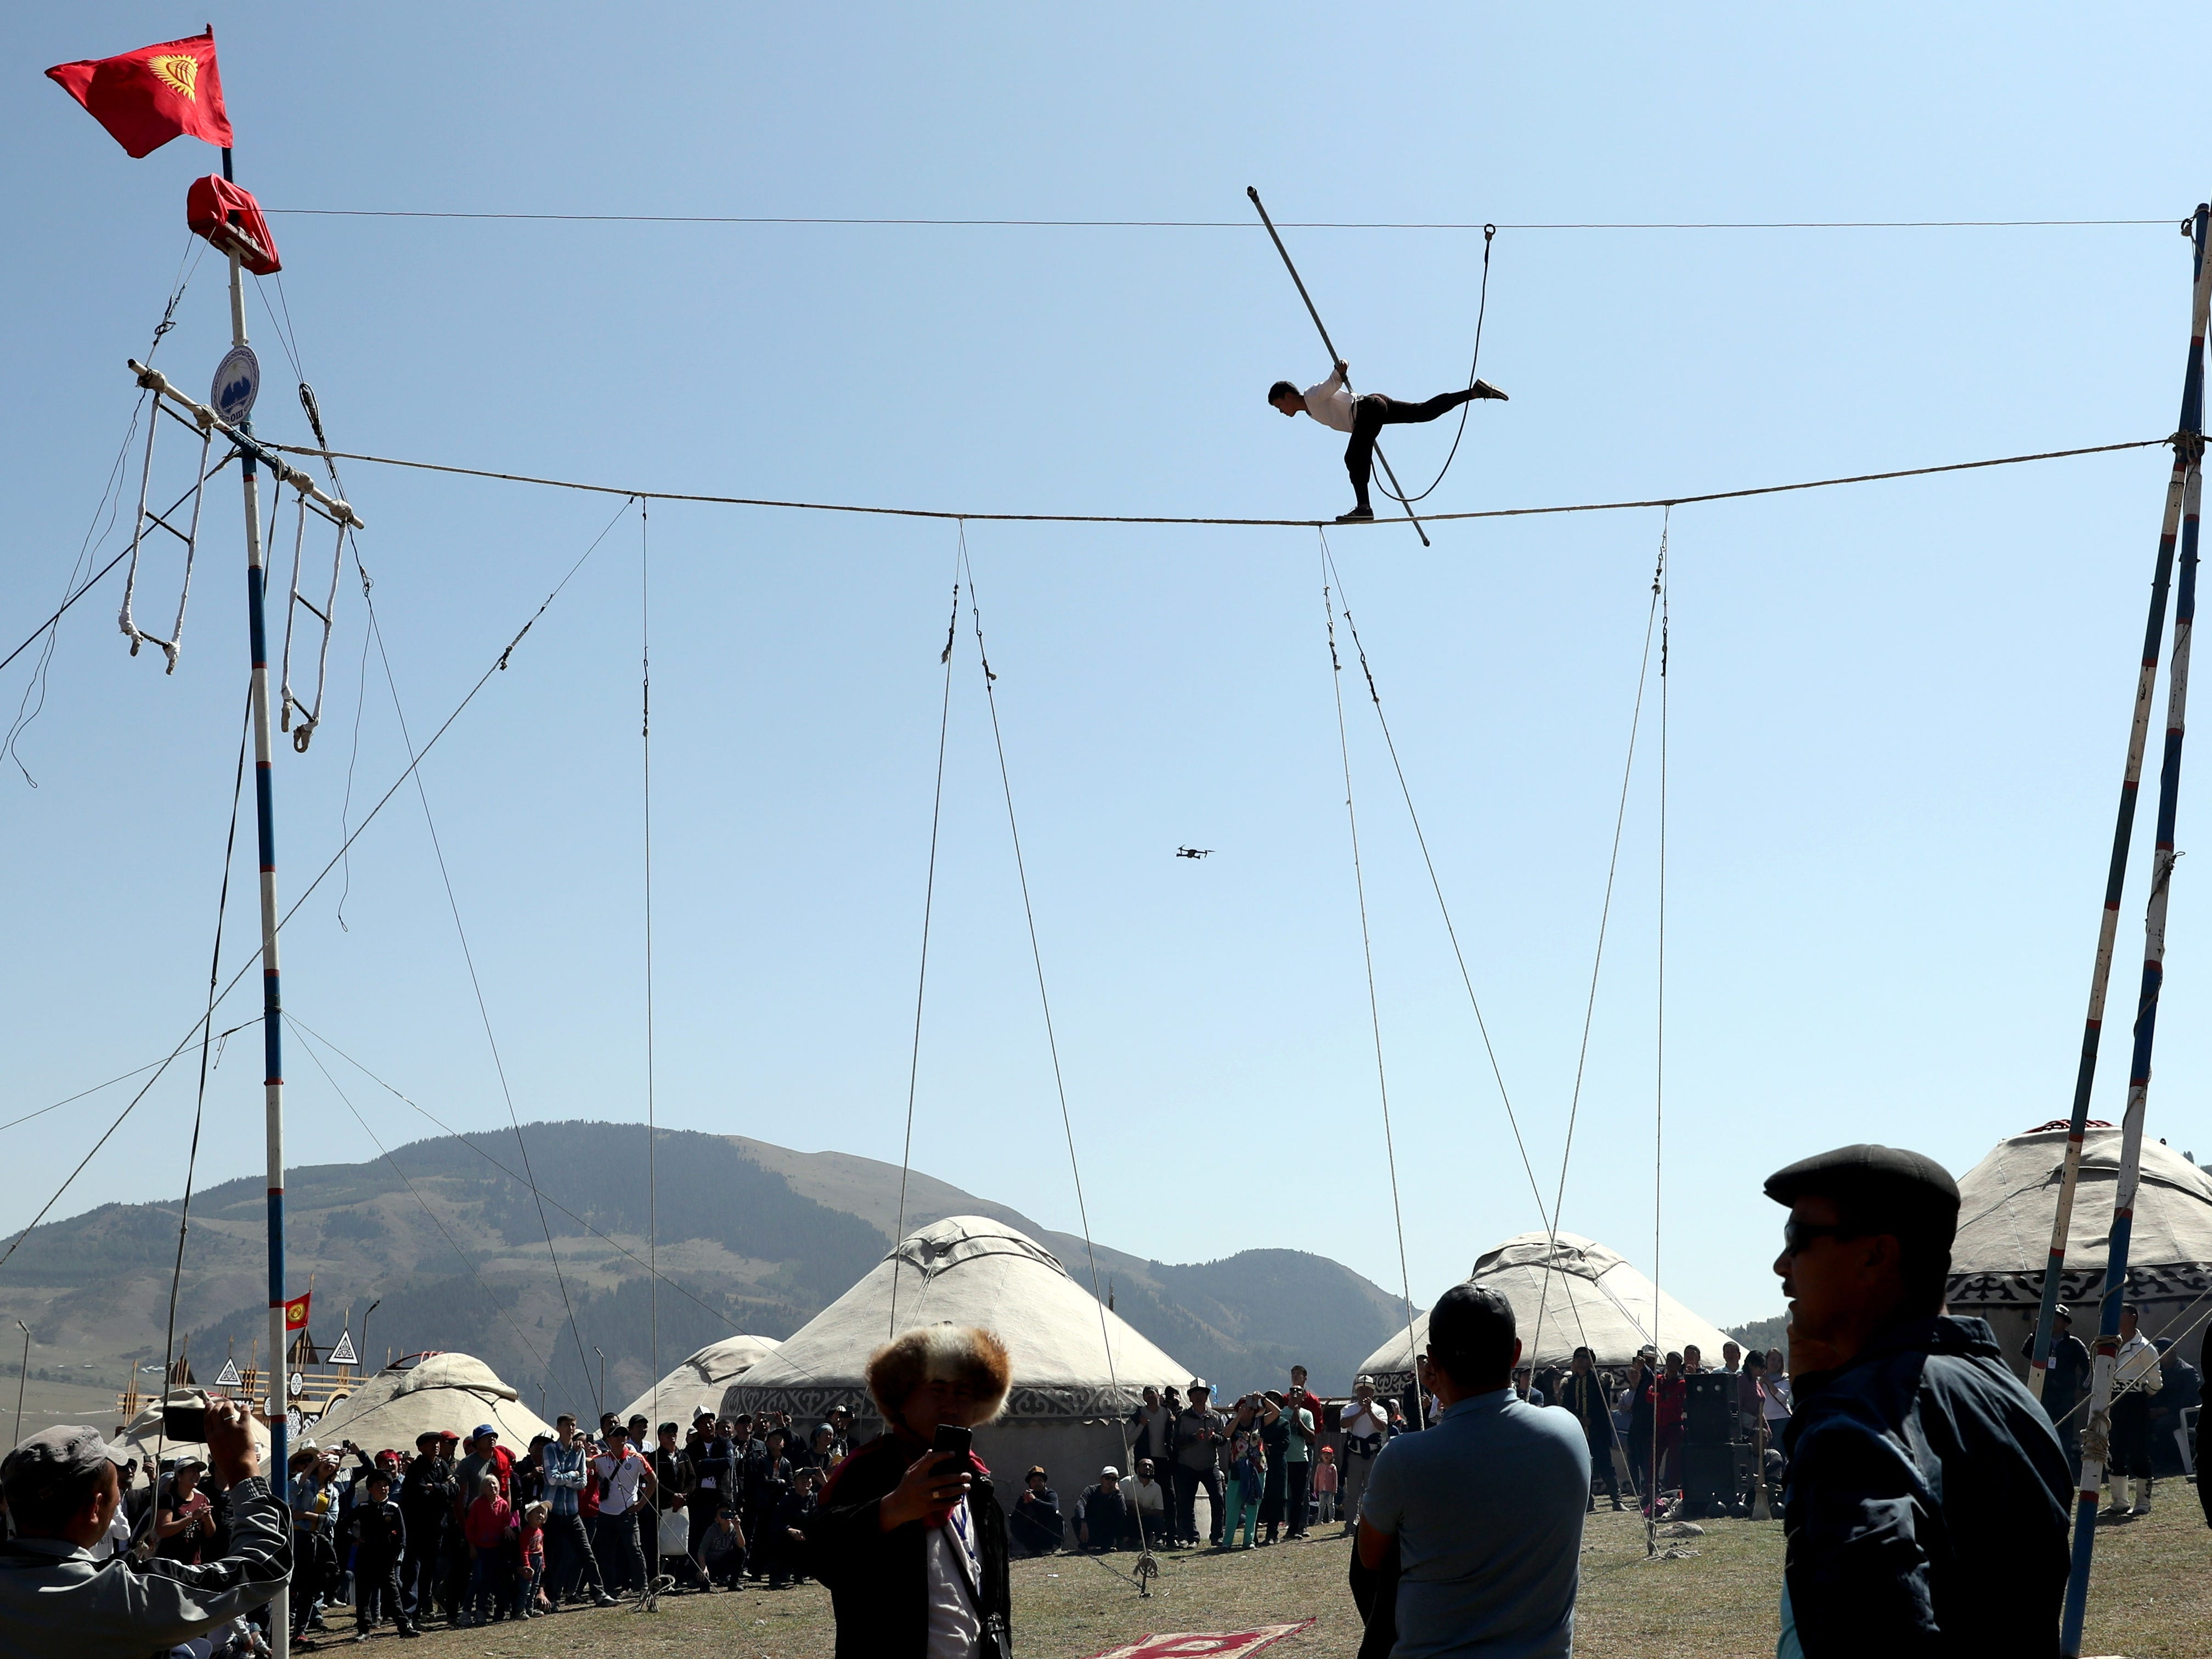 A tightrope walker performs during the third World Nomad Games in Cholpon-Ata, Kyrgyzstan, Sept. 4, 2018.